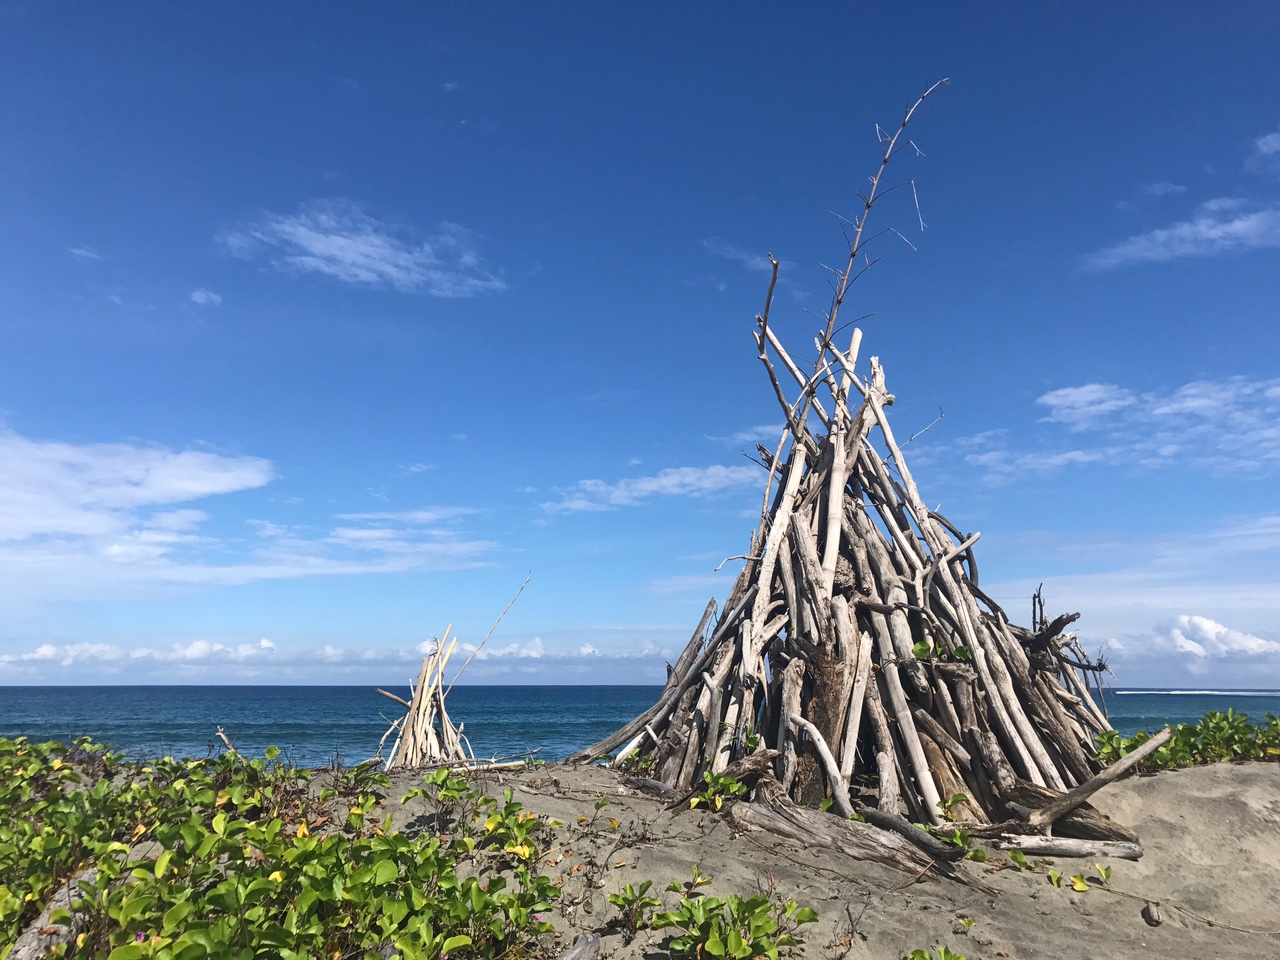 Driftwood teepees on the beach. Currently looking for a roommate! ;)